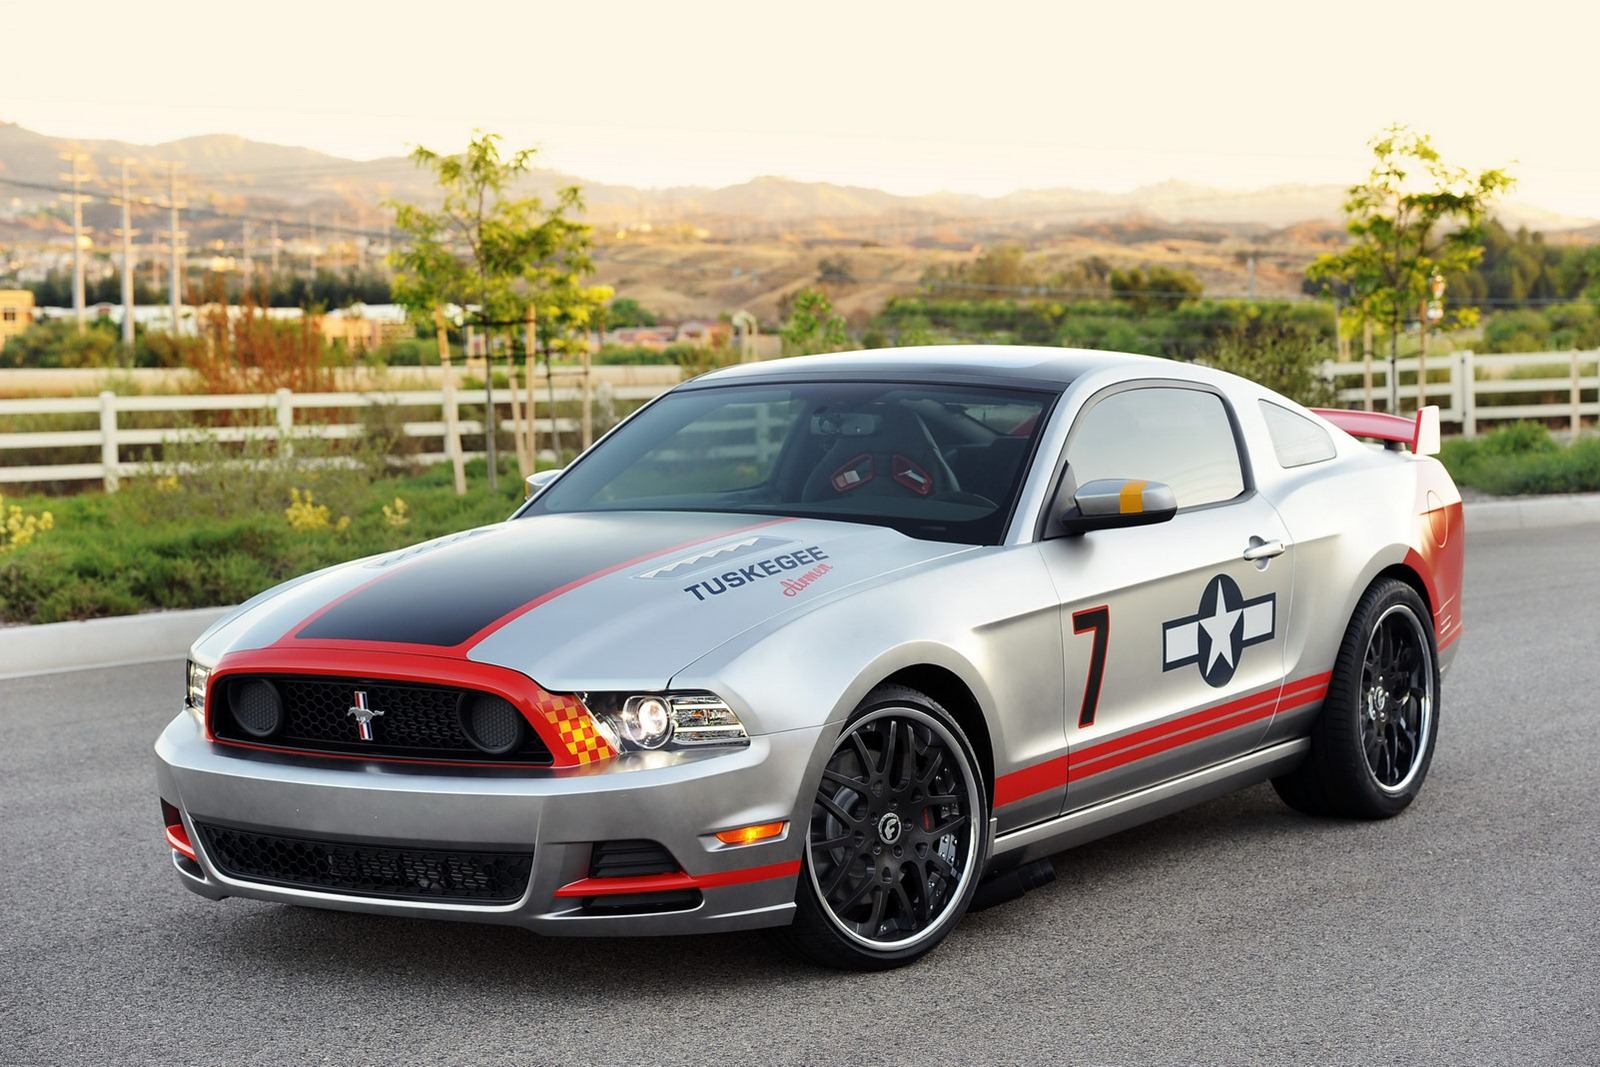 2013 mustang gt livered after p 51 fighter autoevolution